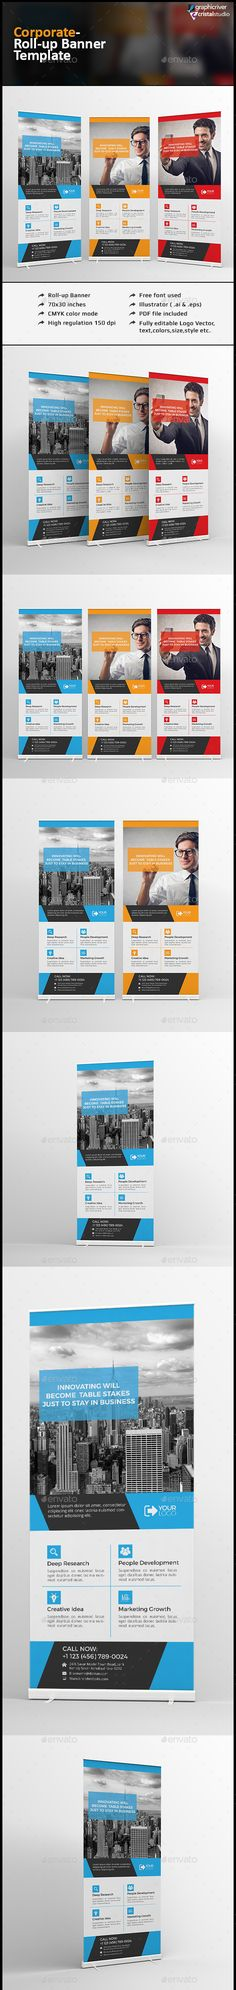 Corporate Roll-up Banner Template EPS, AI #design Download: http://graphicriver.net/item/corporate-rollup-banner/13281493?ref=ksioks